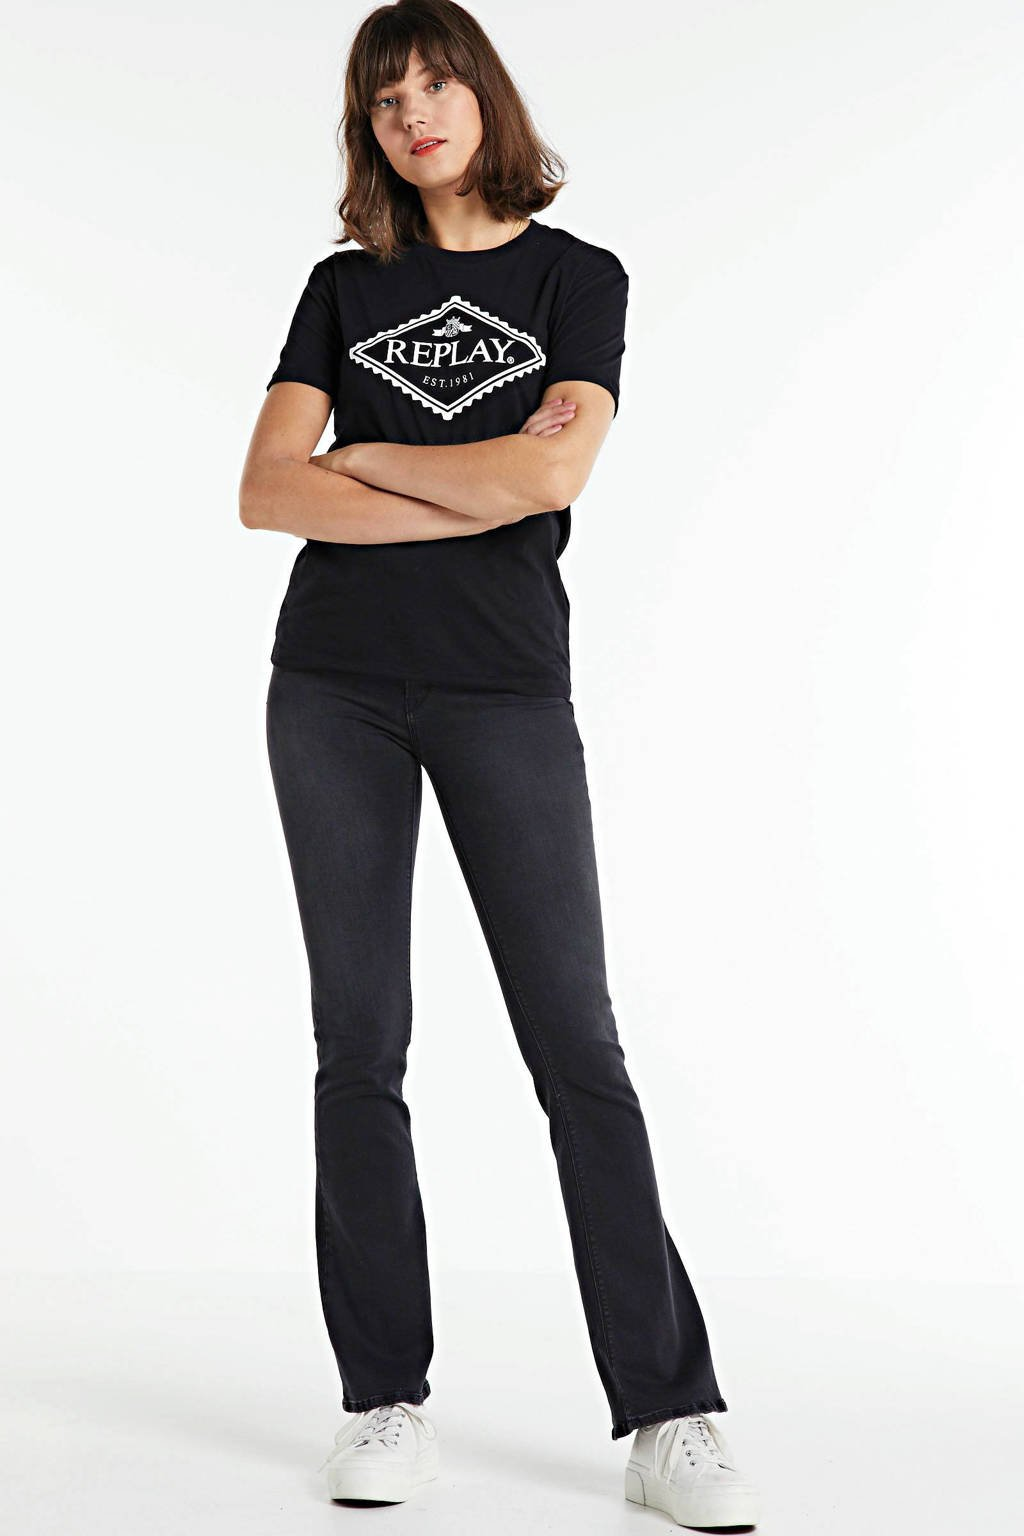 REPLAY flared jeans New Luz donkergrijs, Donkergrijs